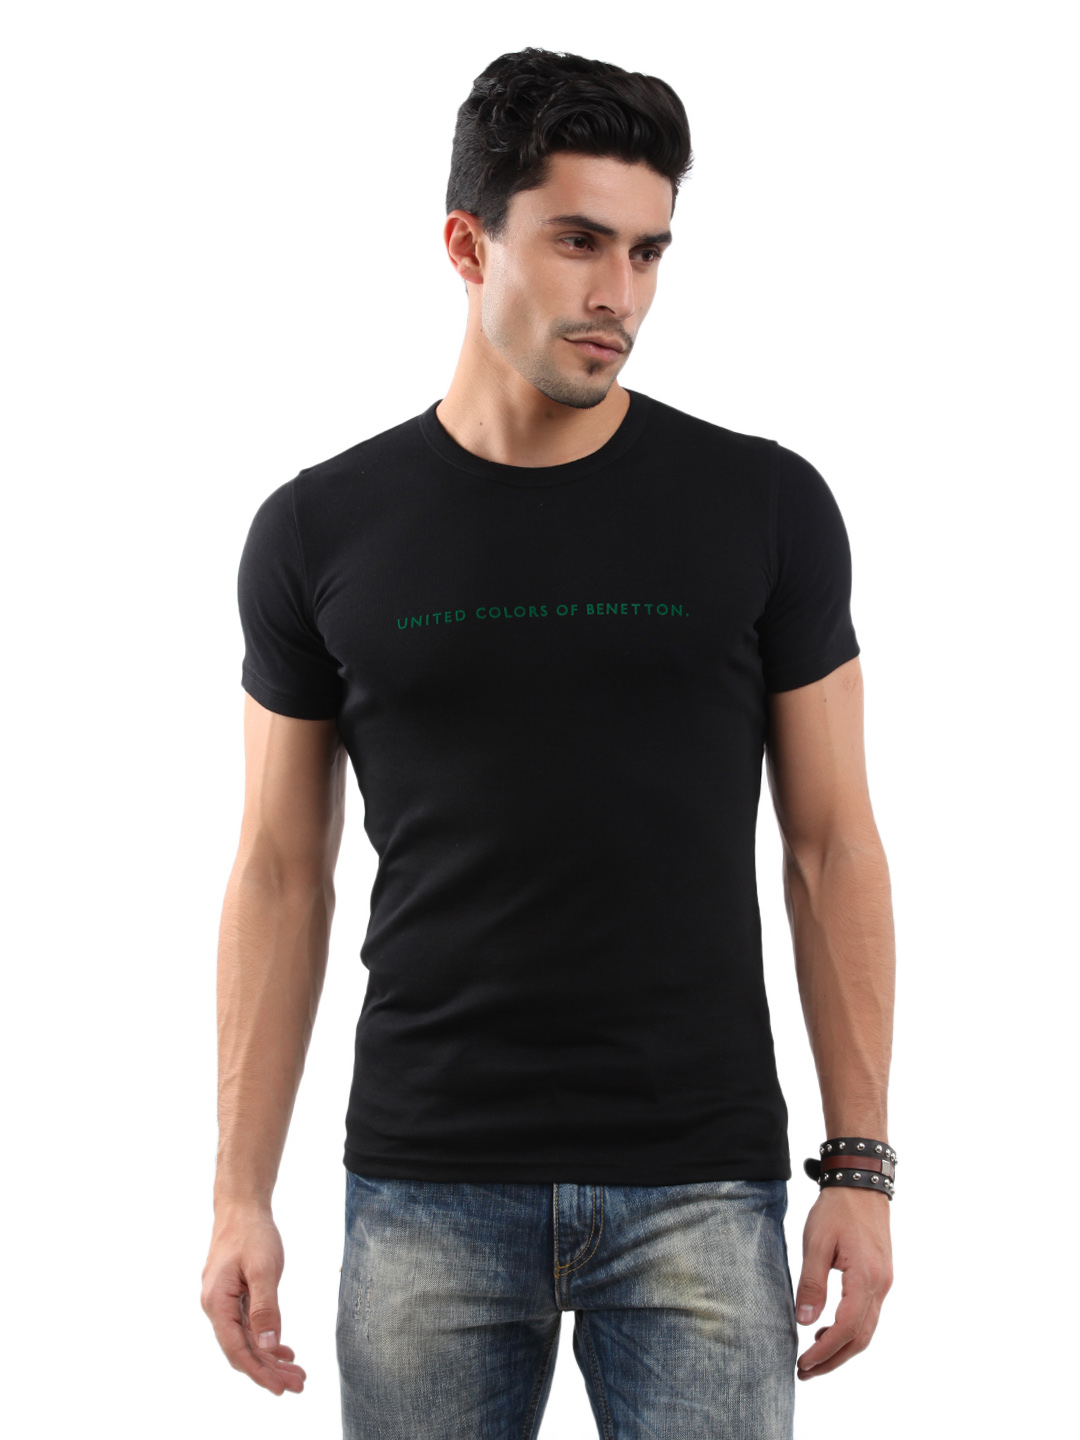 Black t shirt man - Man In Black T Shirt Black T Shirt For Men